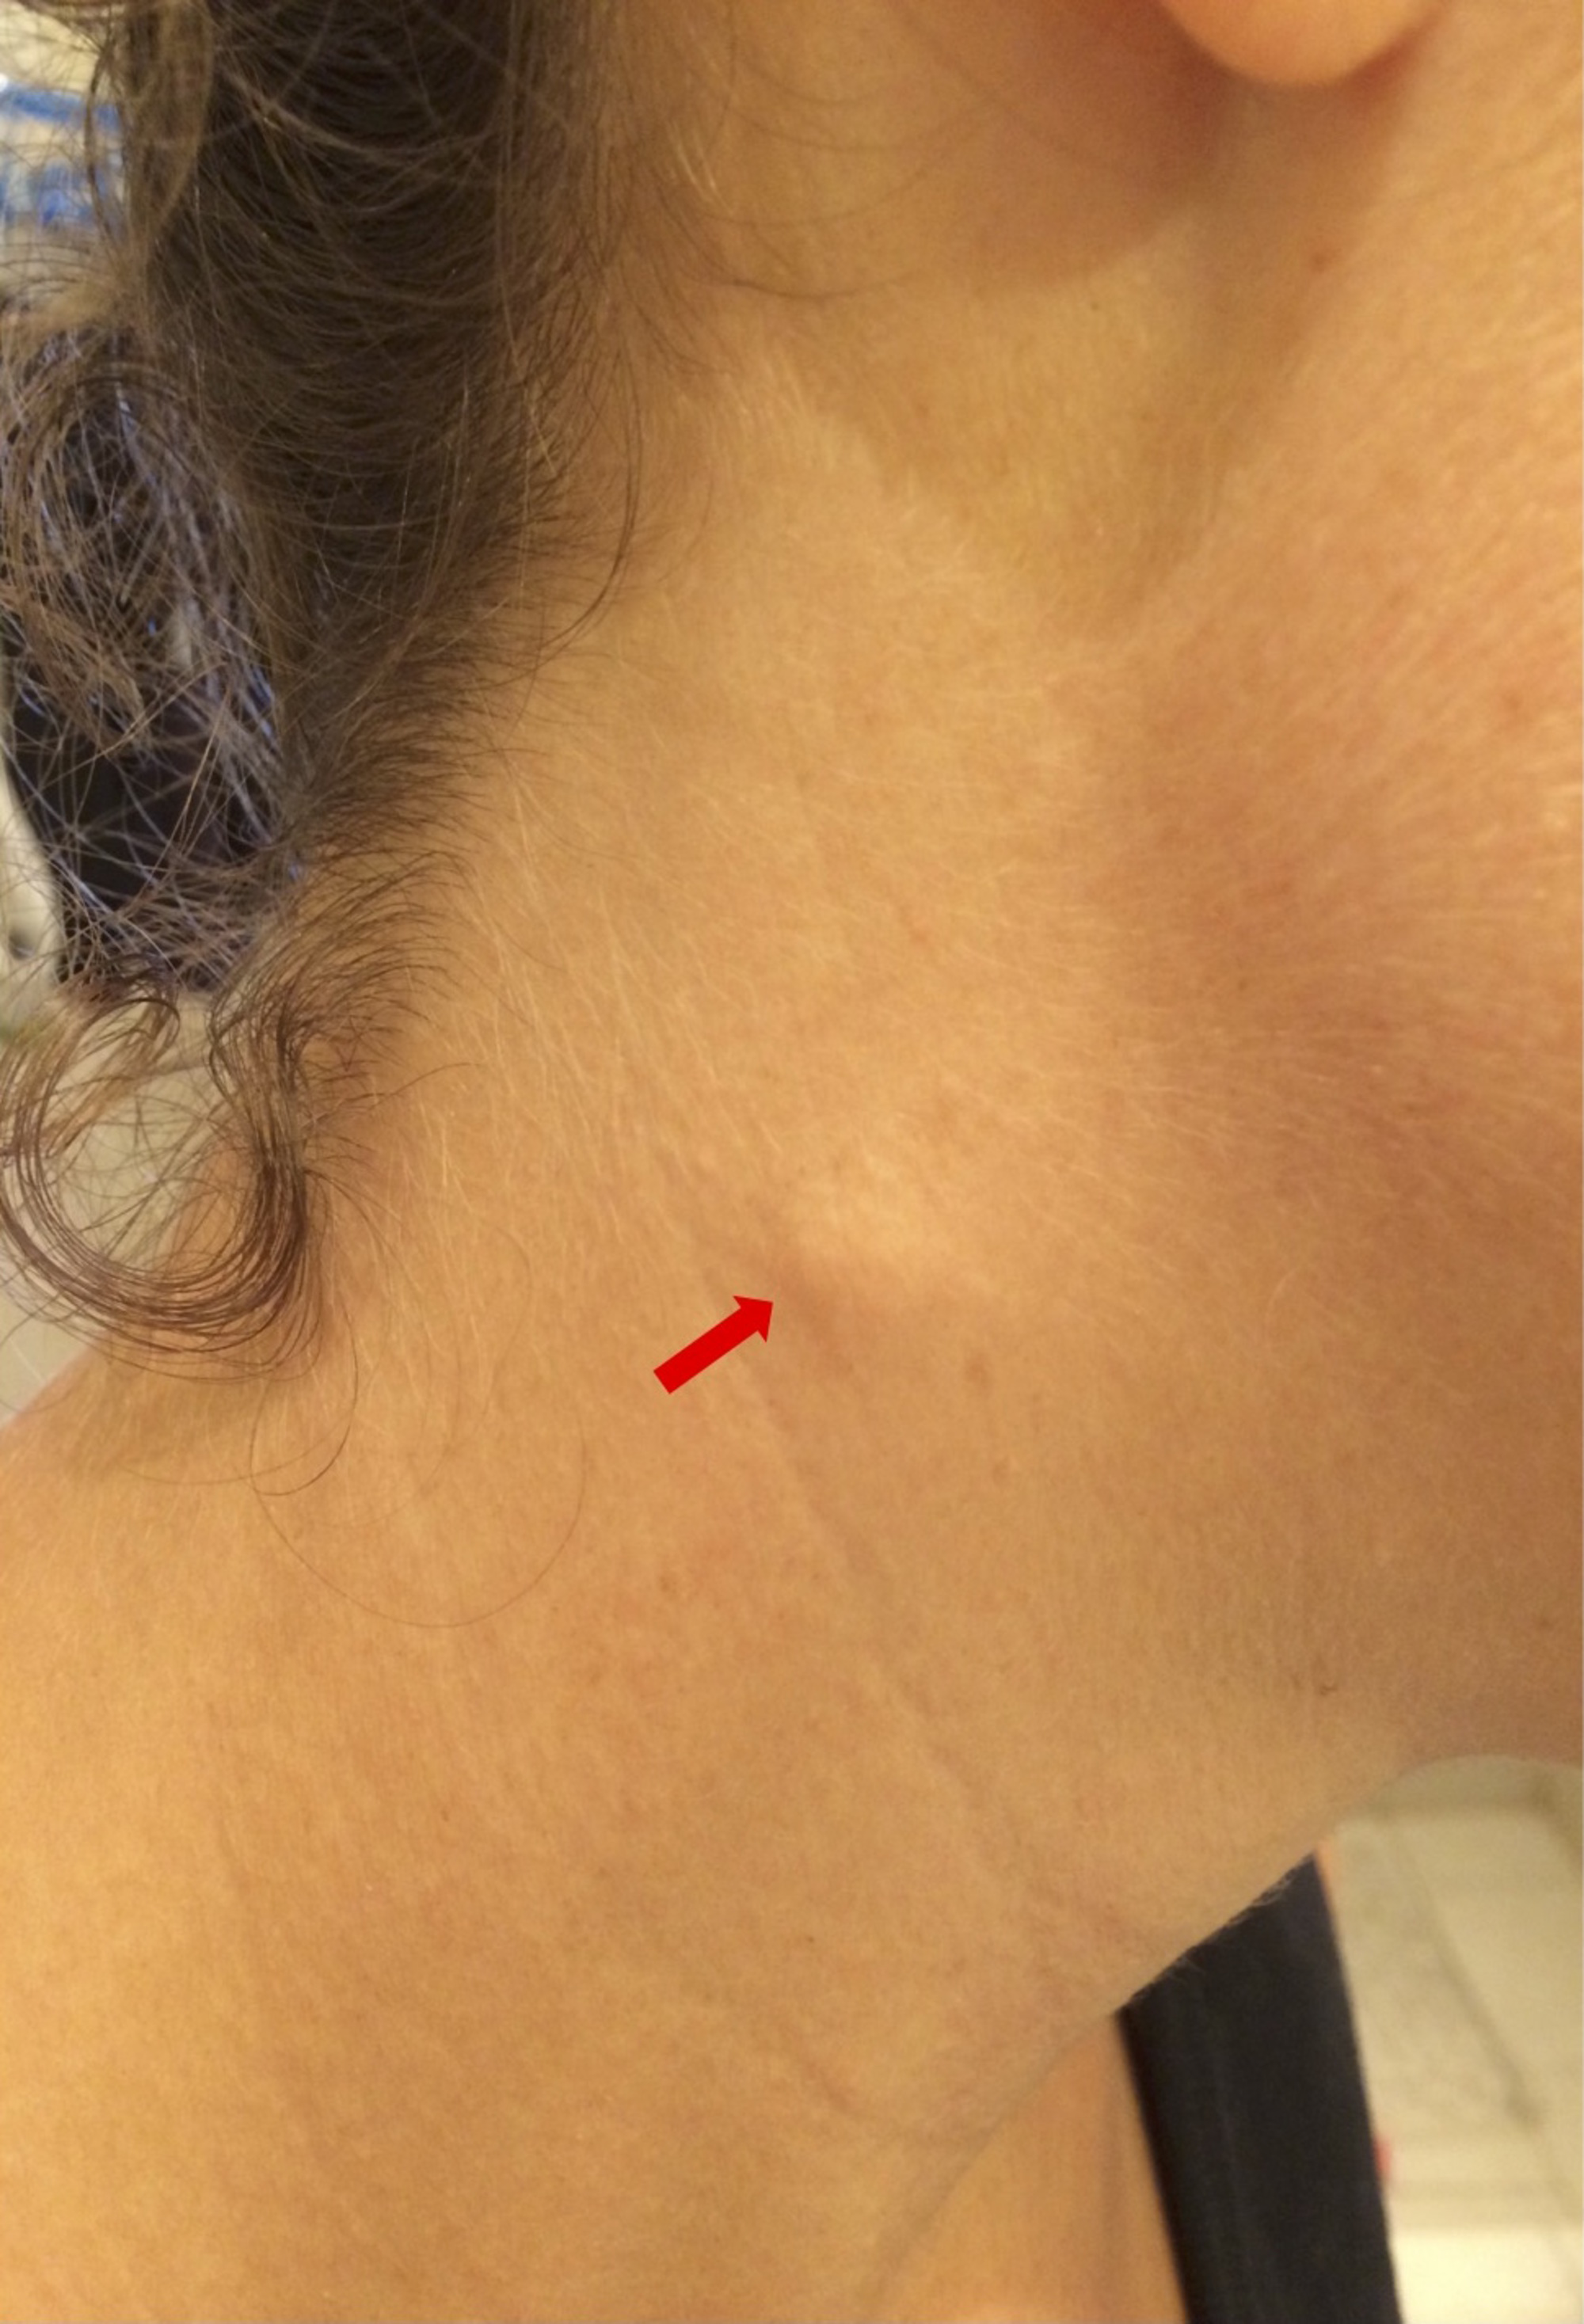 Swelling On The Right Sternocleidomastoid Muscle Midway Along